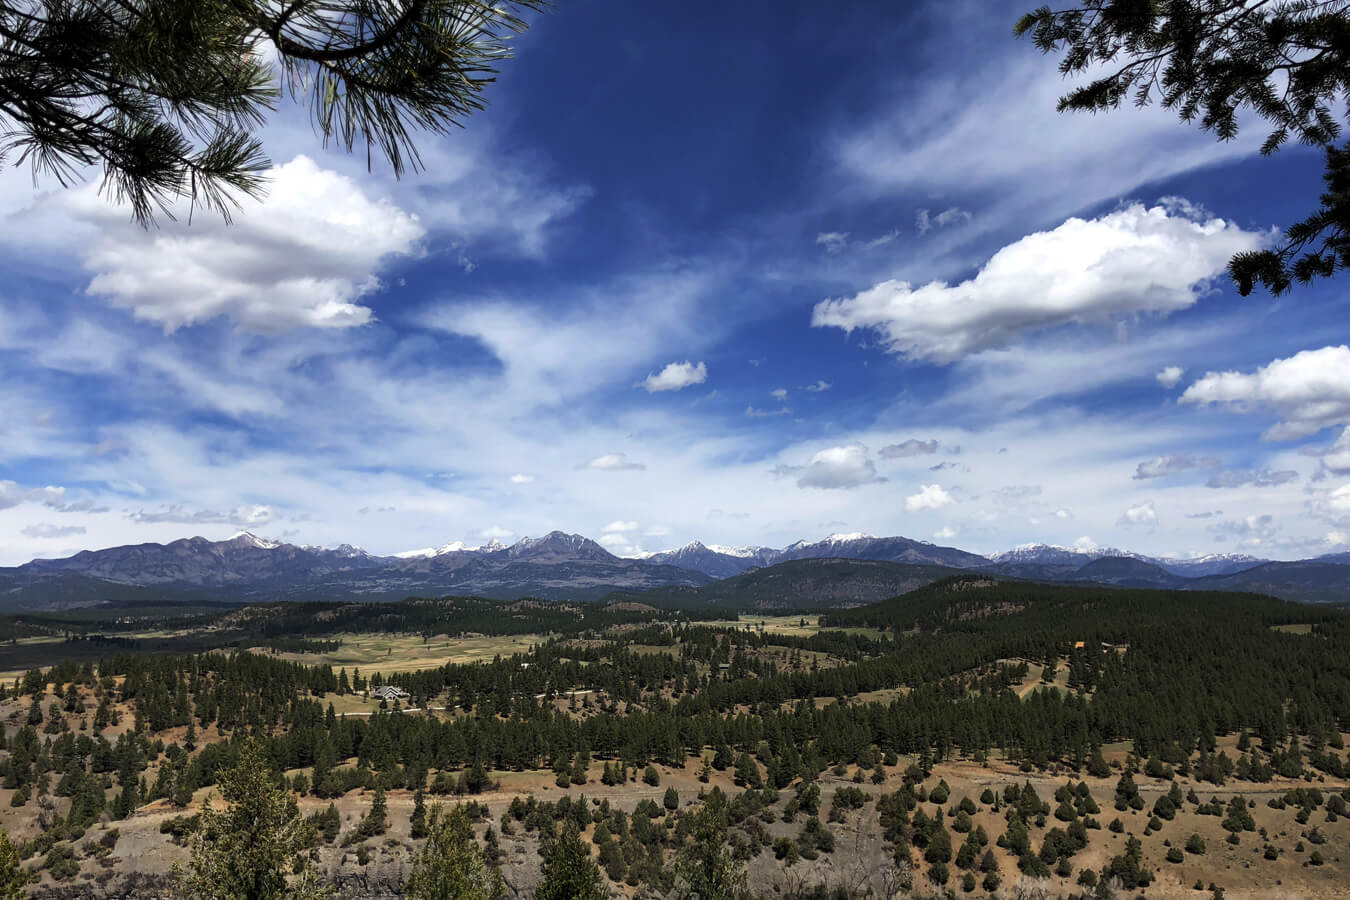 View of the San Juan Mountains from Reservoir Hill in downtown Pagosa Springs